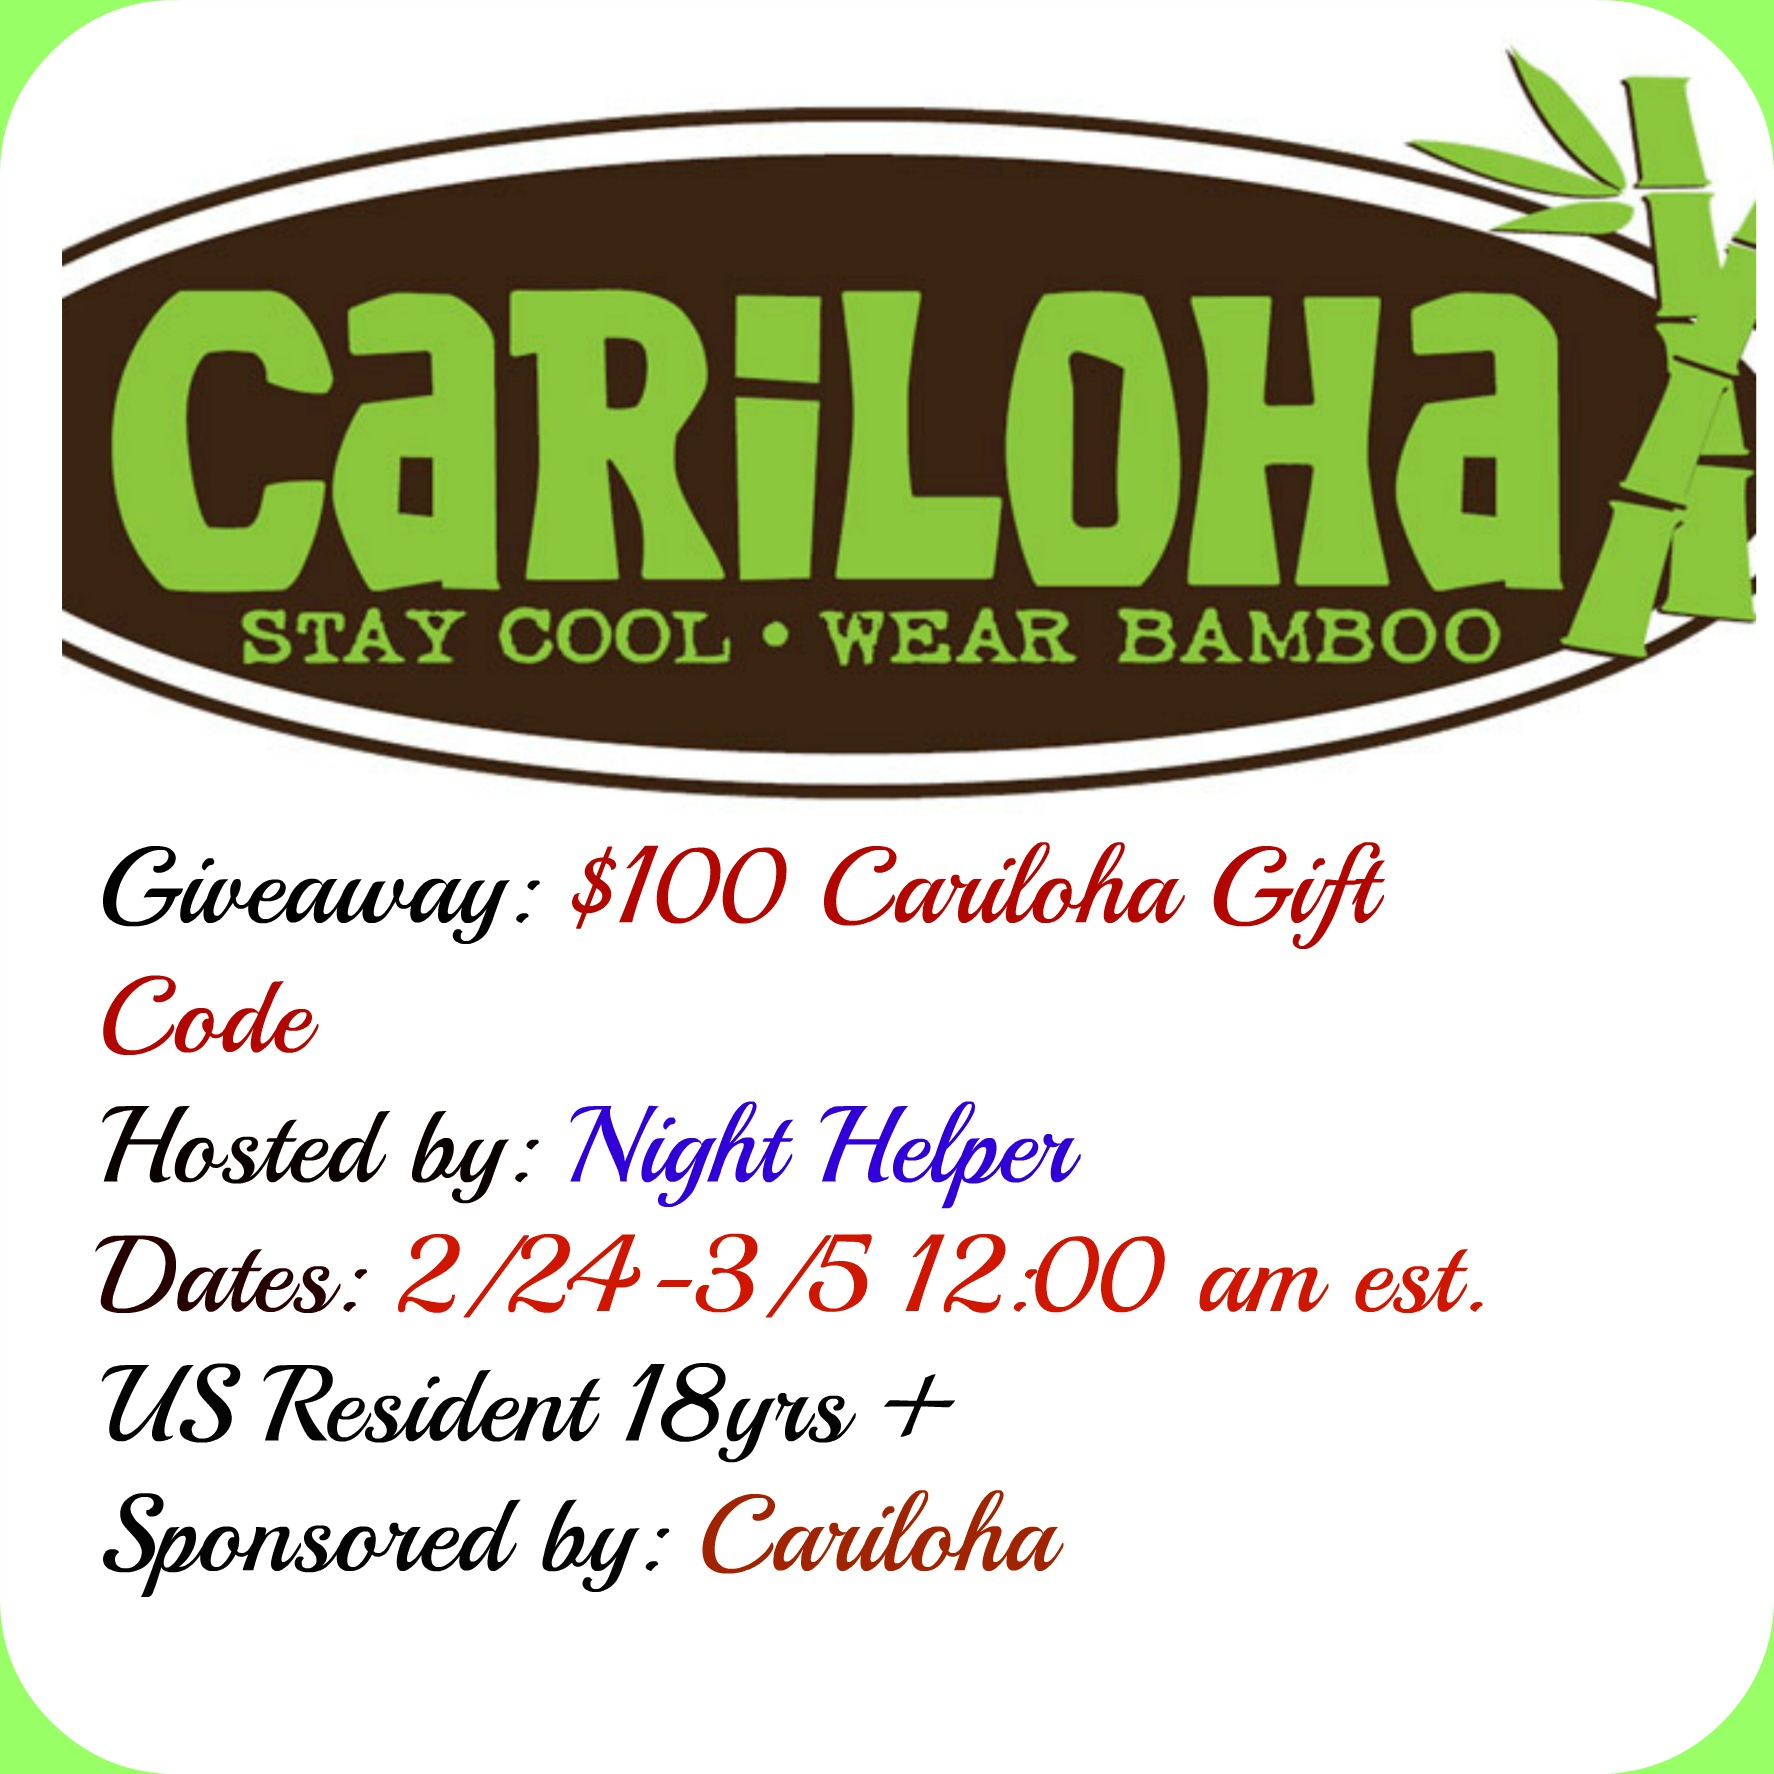 #100 Cariloha Gift Card Giveaway